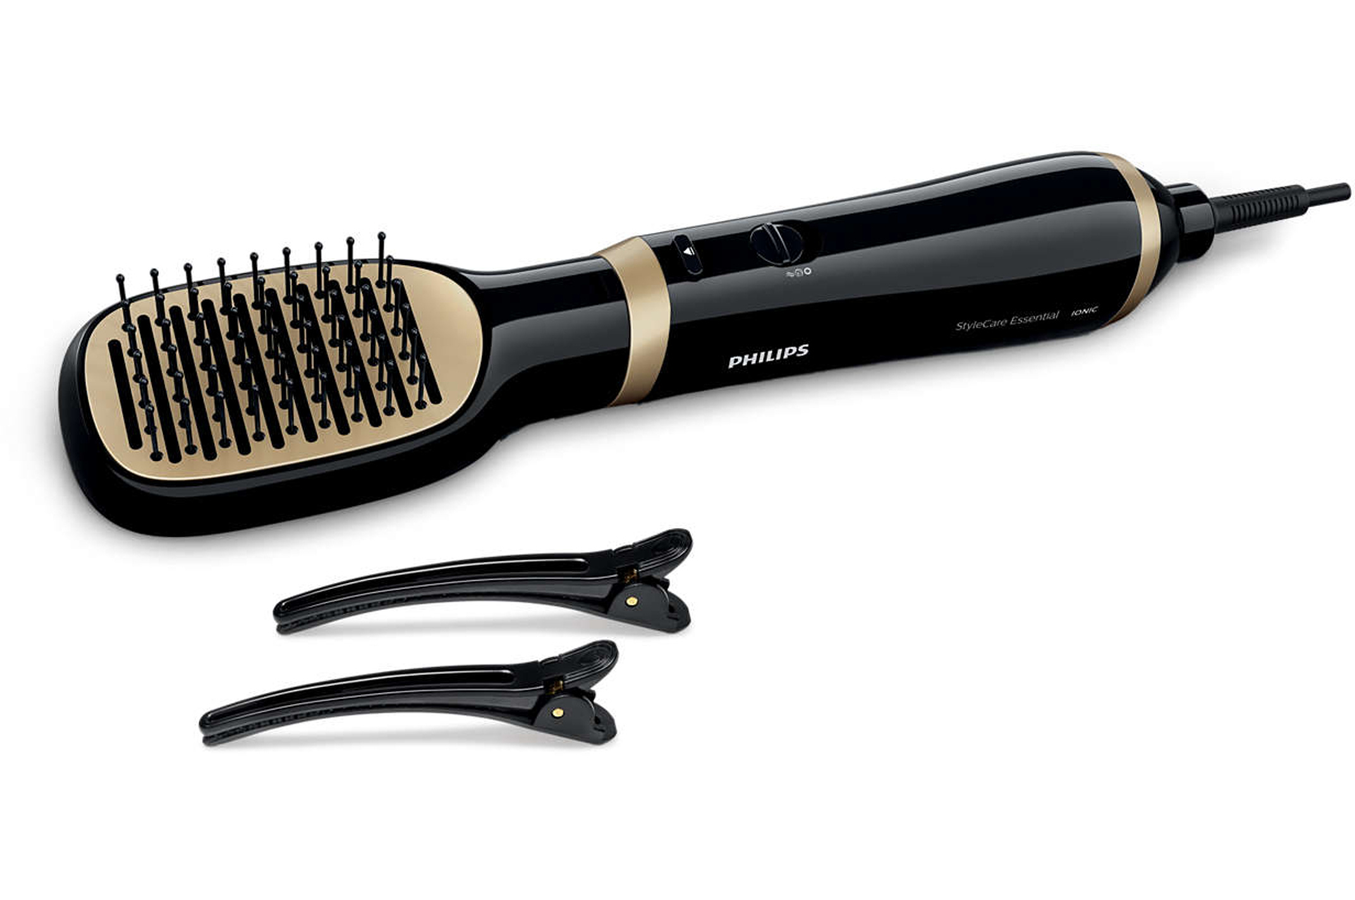 brosse coiffante philips hp8659 90 stylecare enssential. Black Bedroom Furniture Sets. Home Design Ideas